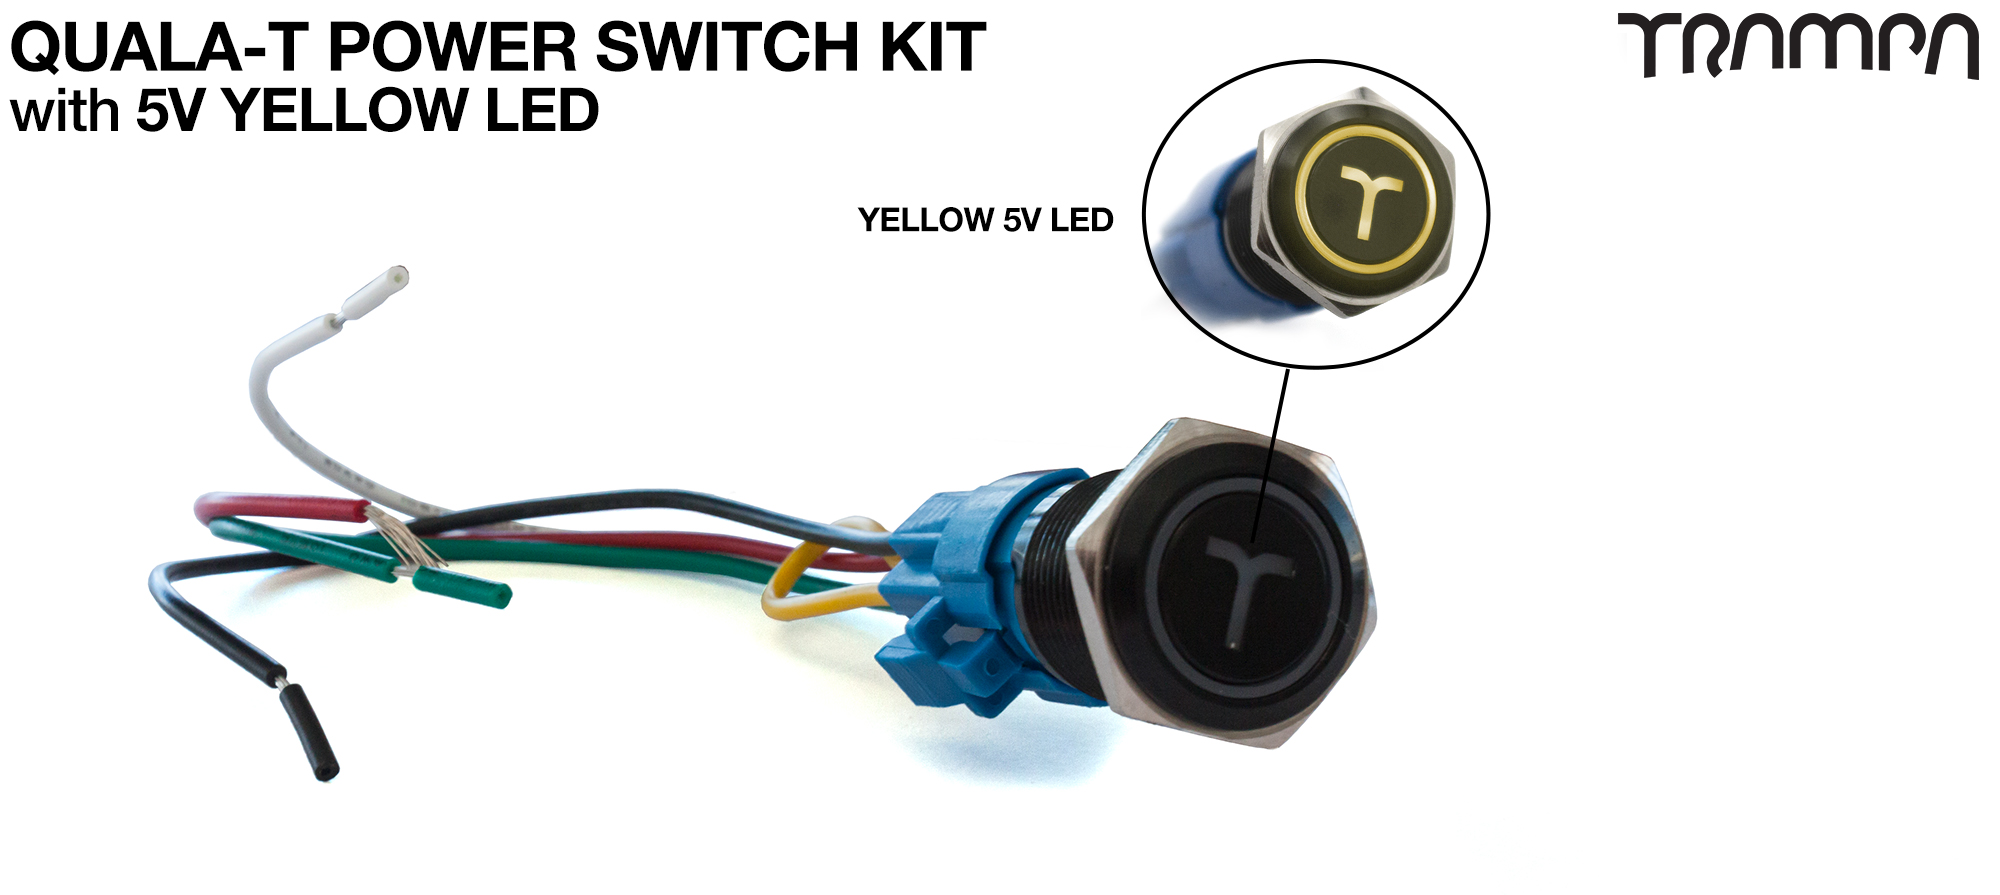 YELLOW LED QUALA-T Power Switch Kit with 16mm Fixing Nut & Cable Harness